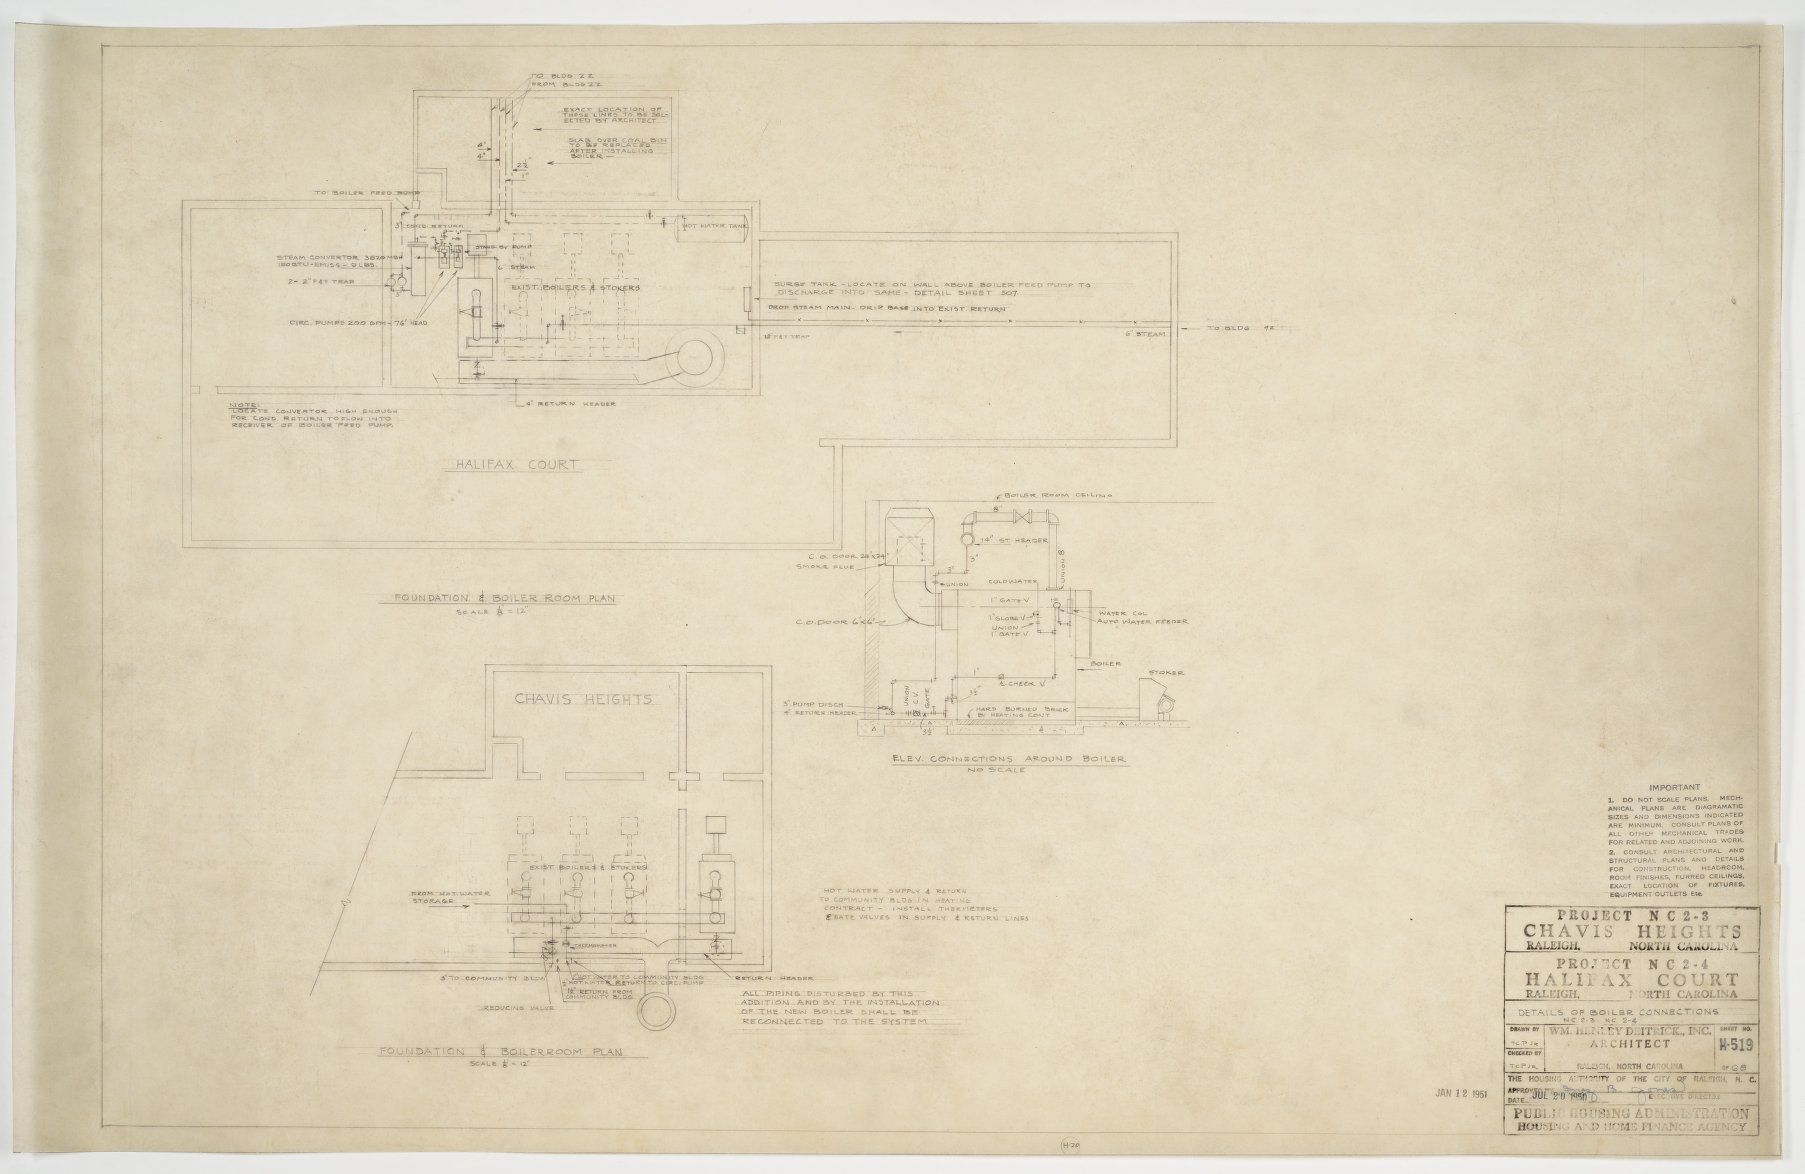 Boiler room plans and elevations (Chavis Heights) - mc00227-003 ...